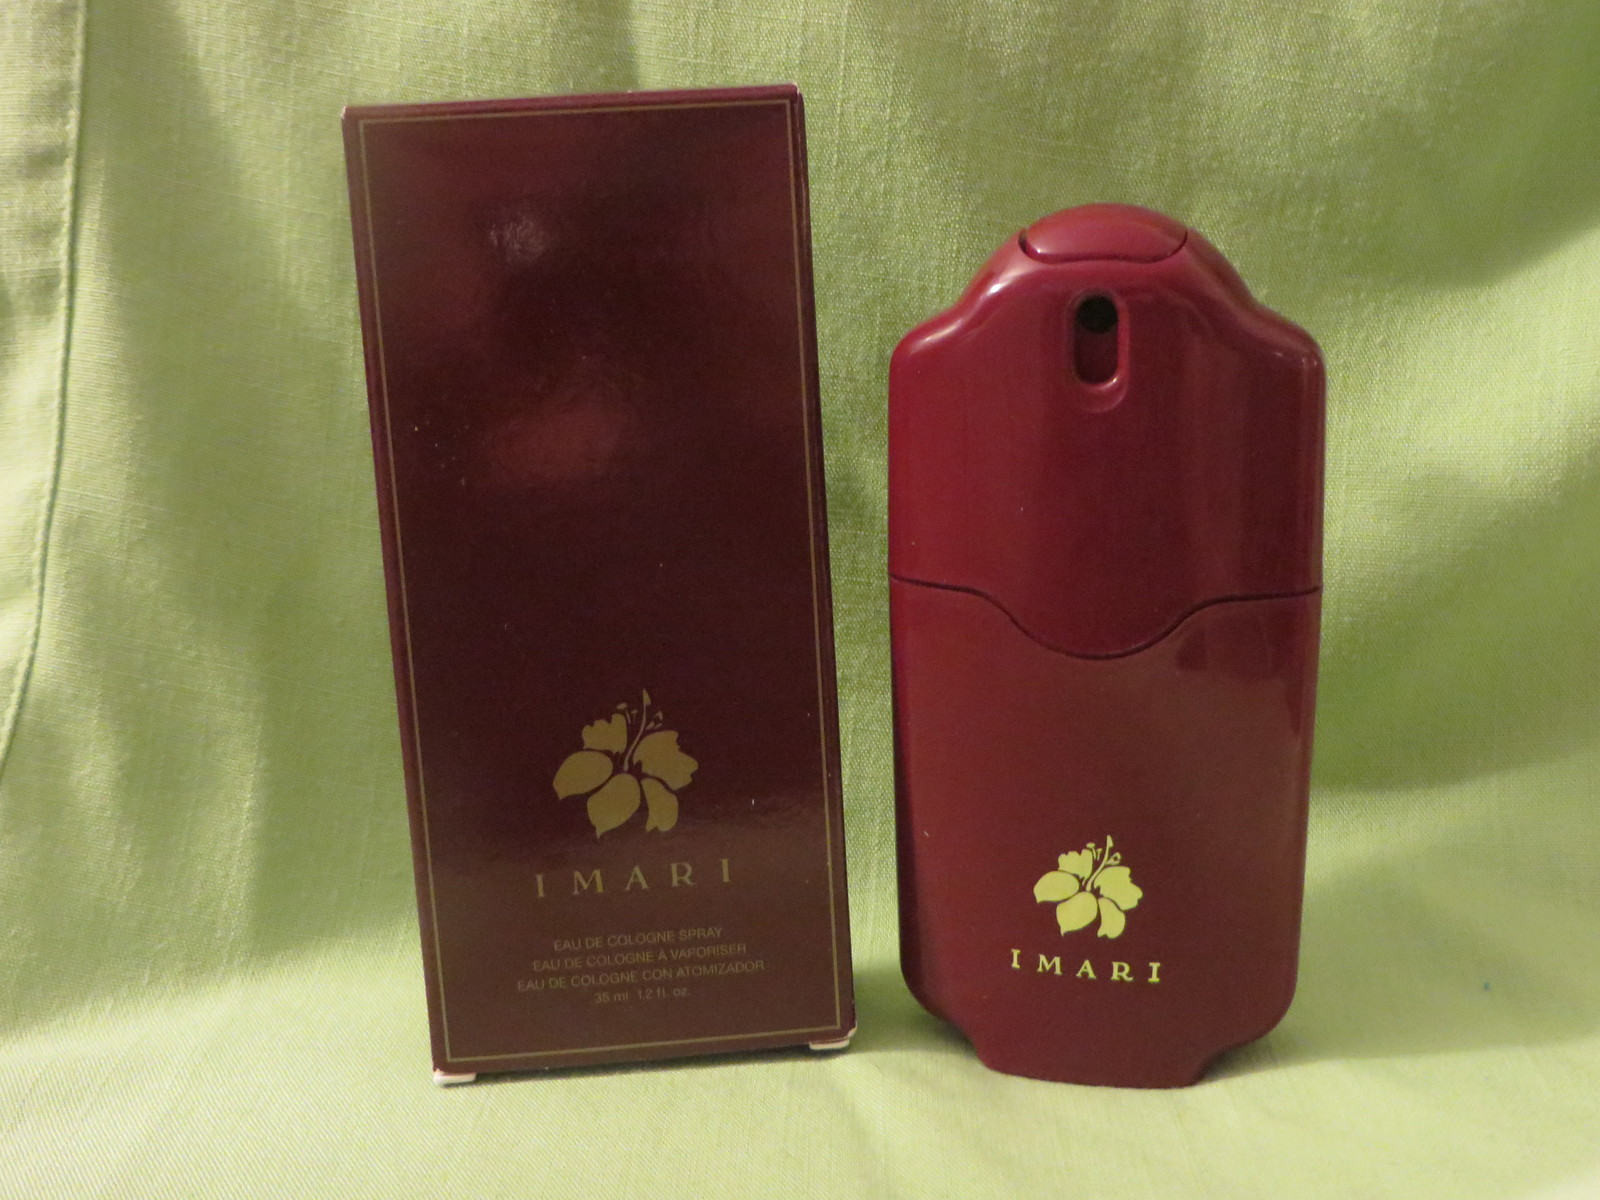 Primary image for AVON LOT OF 2 IMARI EAU DE COLOGNE SPRAY 1.7 OZ NIB GREAT DEAL